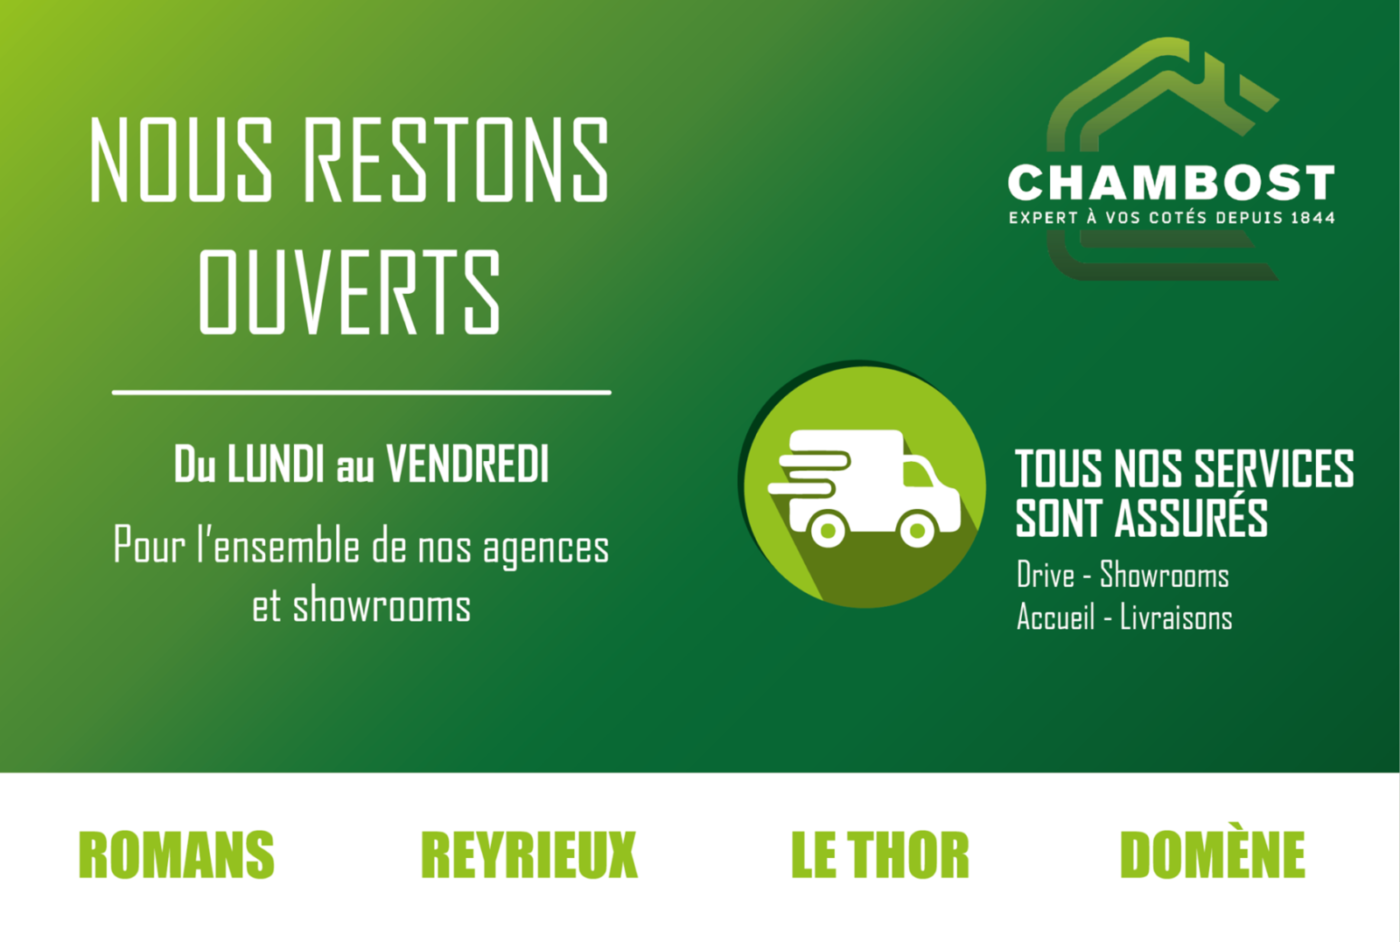 COVID-19, Vos agences Chambost restent ouvertes